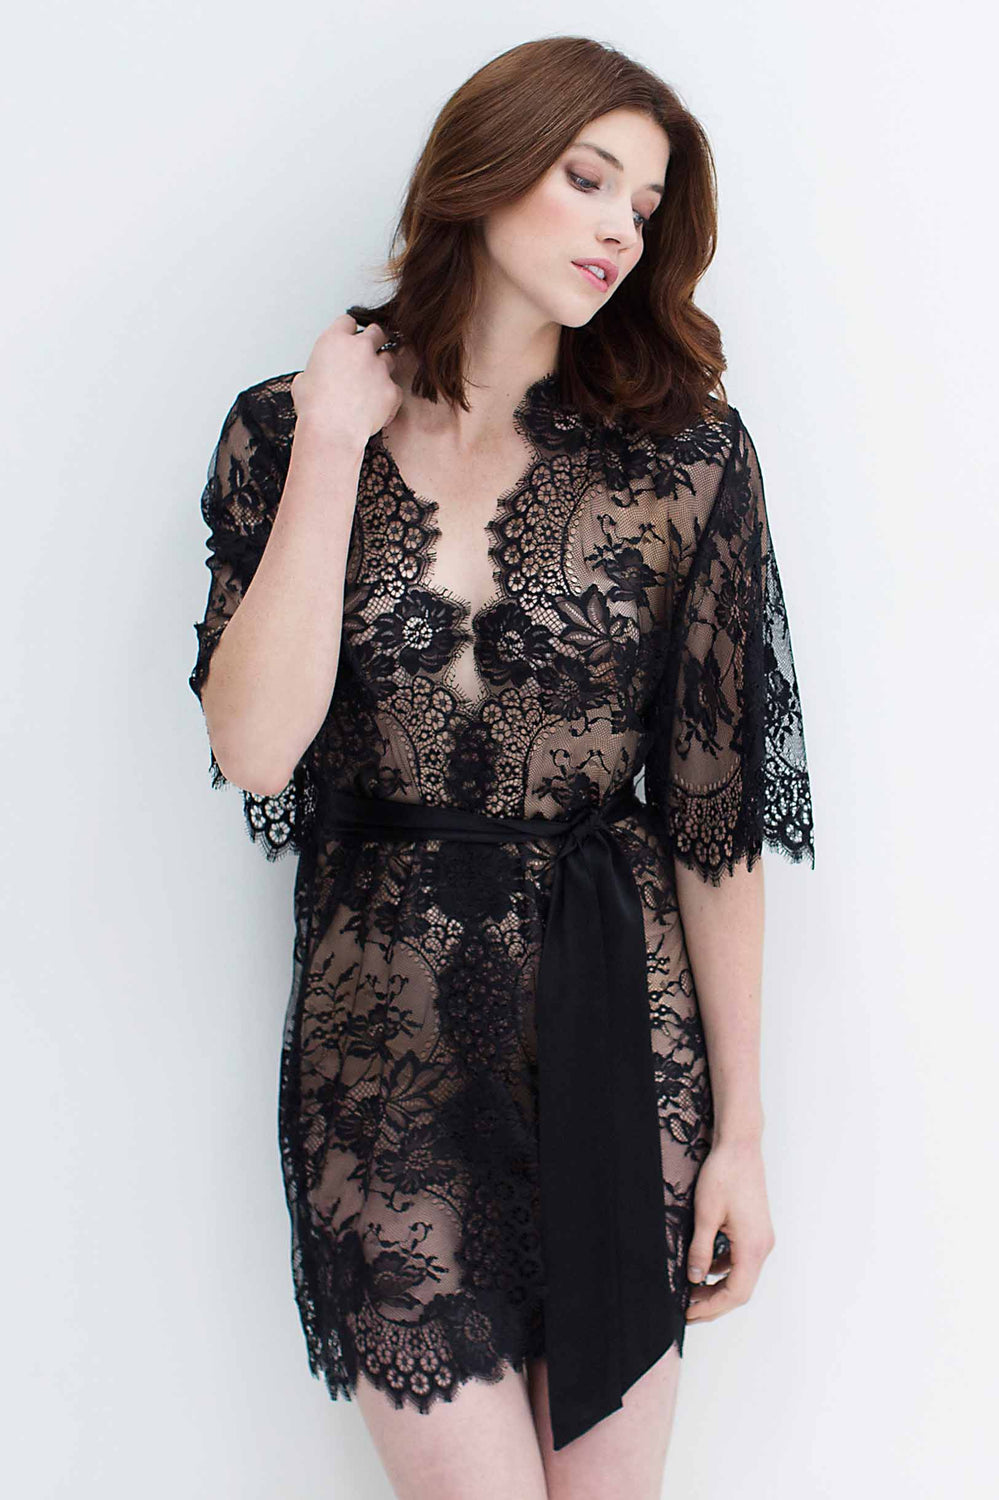 Swan Queen boudoir lace kimono robe in Black - style 102SH